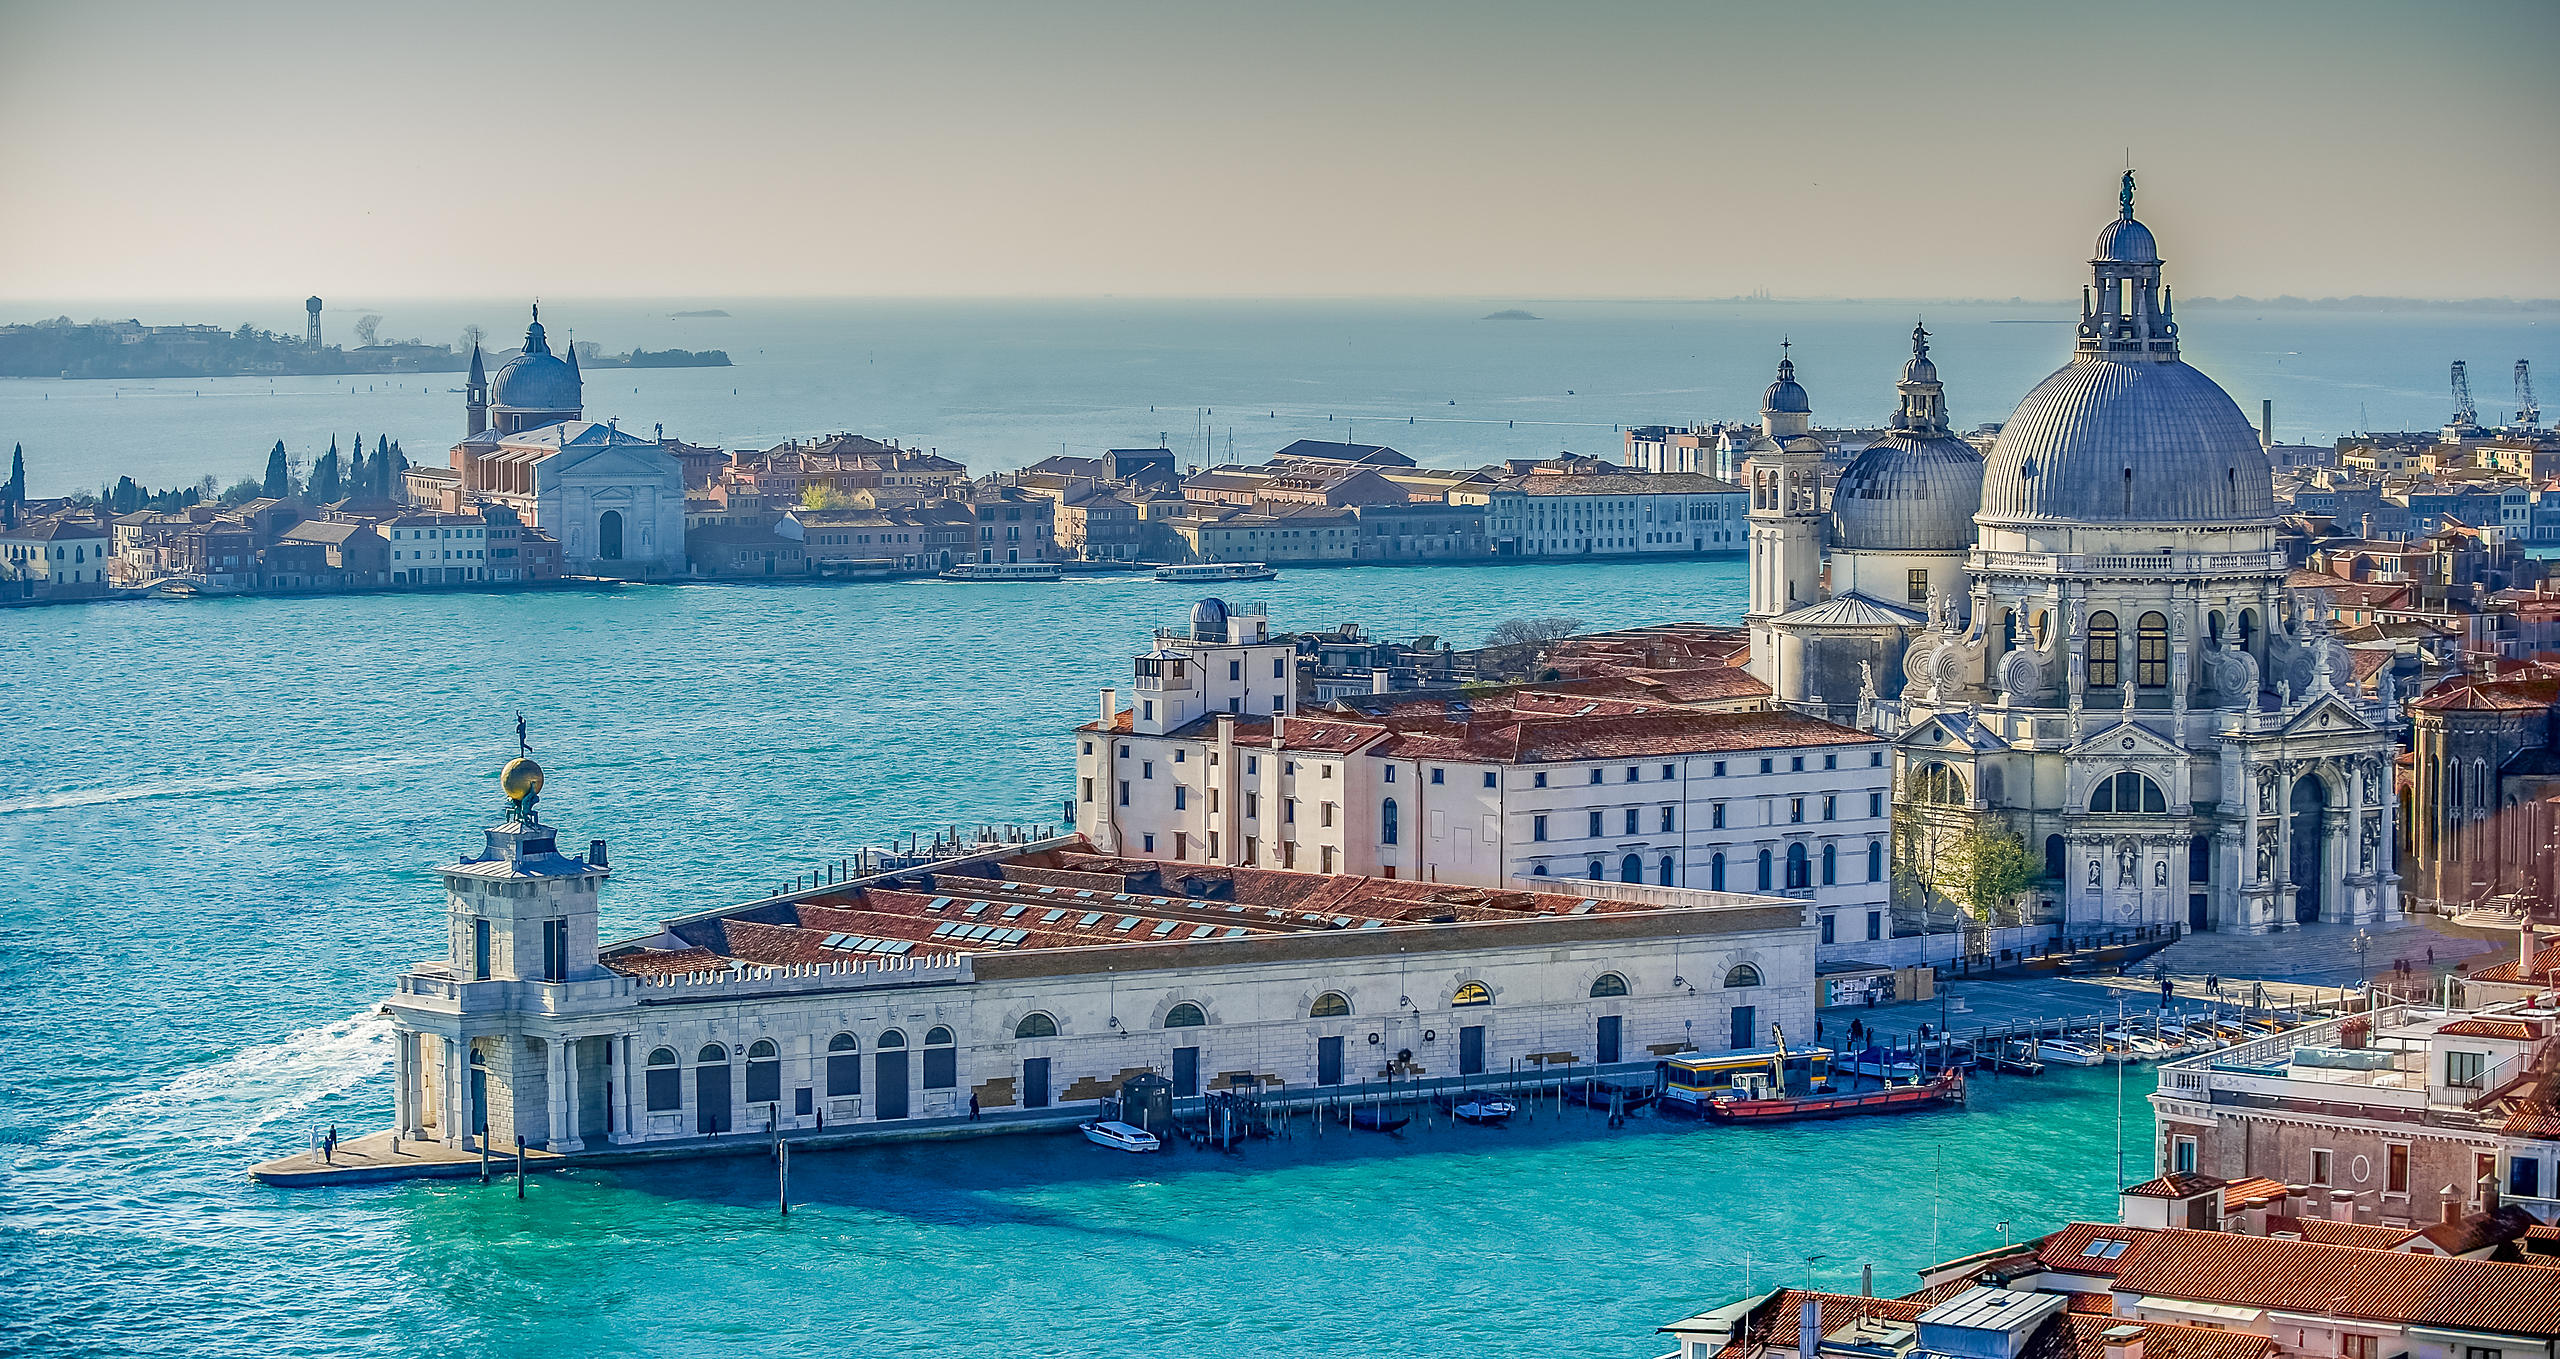 Arial View of the Santa Maria della Salute & Dogona de Mar, with Giudecca Peninsular in the Background